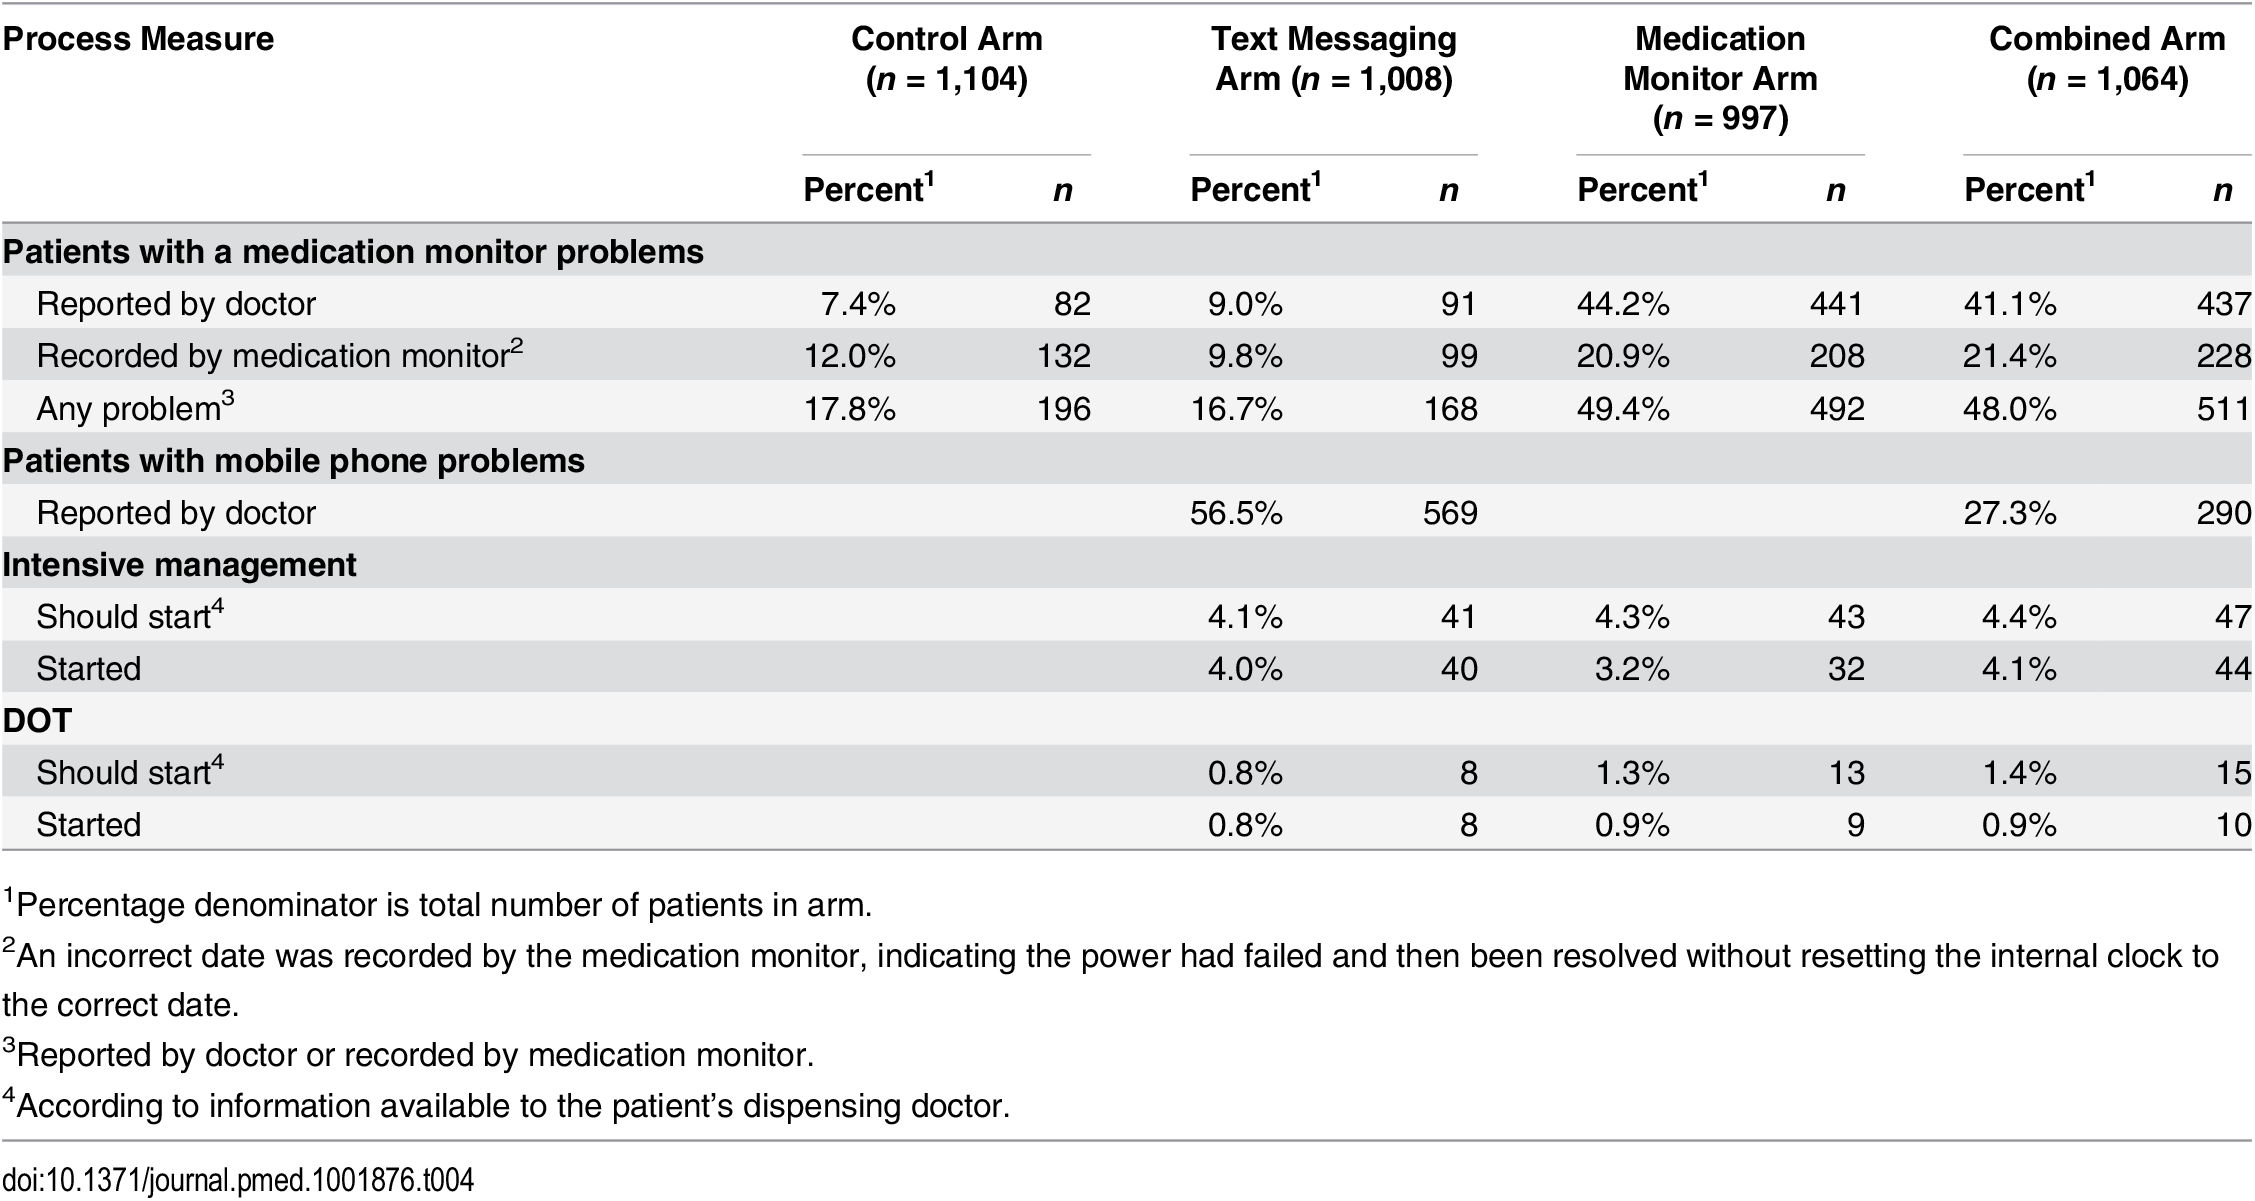 Intervention process data and medication monitoring data by study arm.